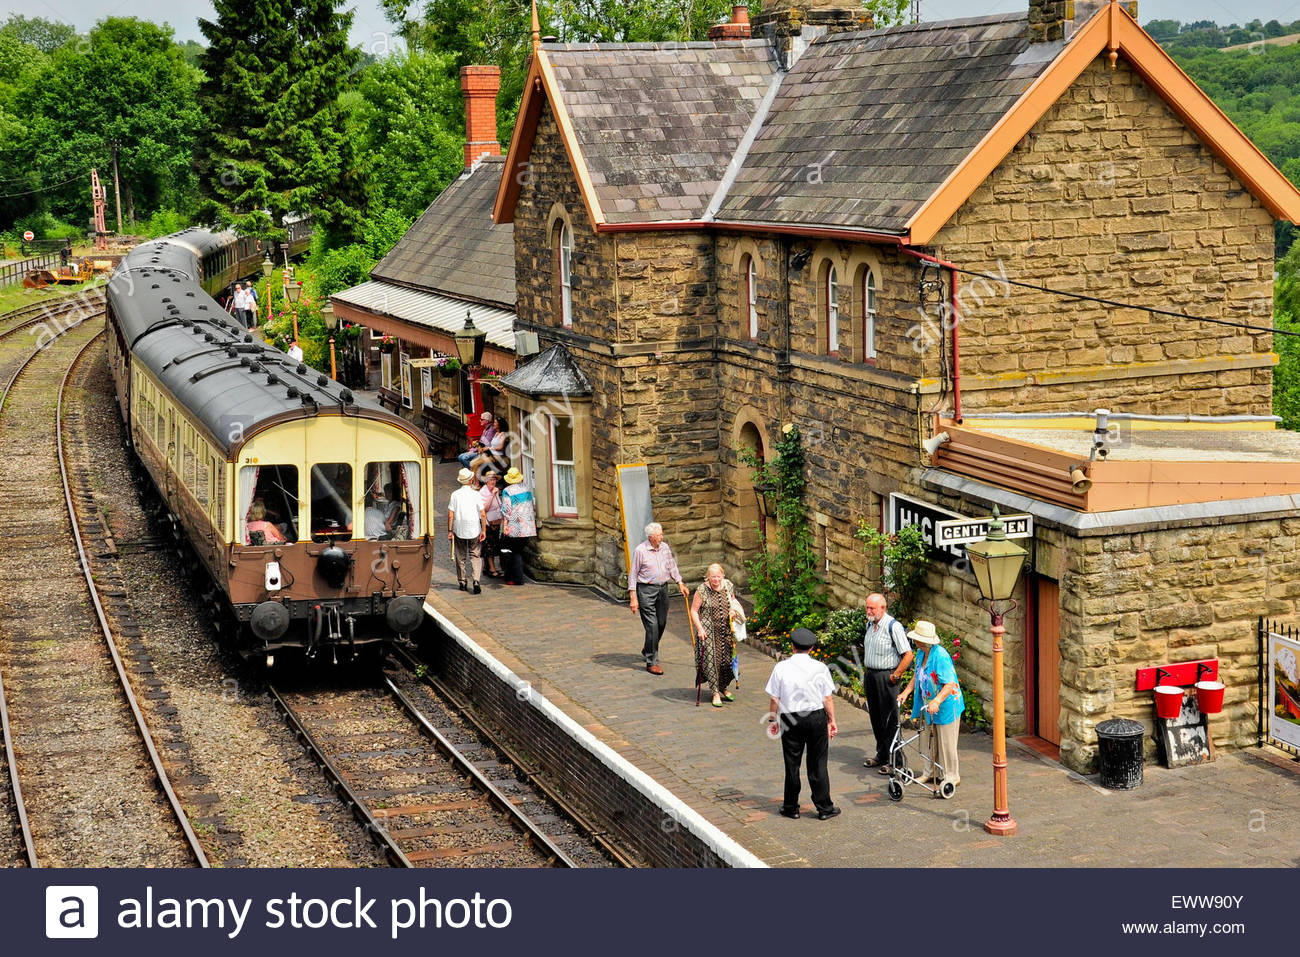 A train at the platform of Highley Railway station on the Severn Valley Railway in Shropshire, UK. - Stock Image